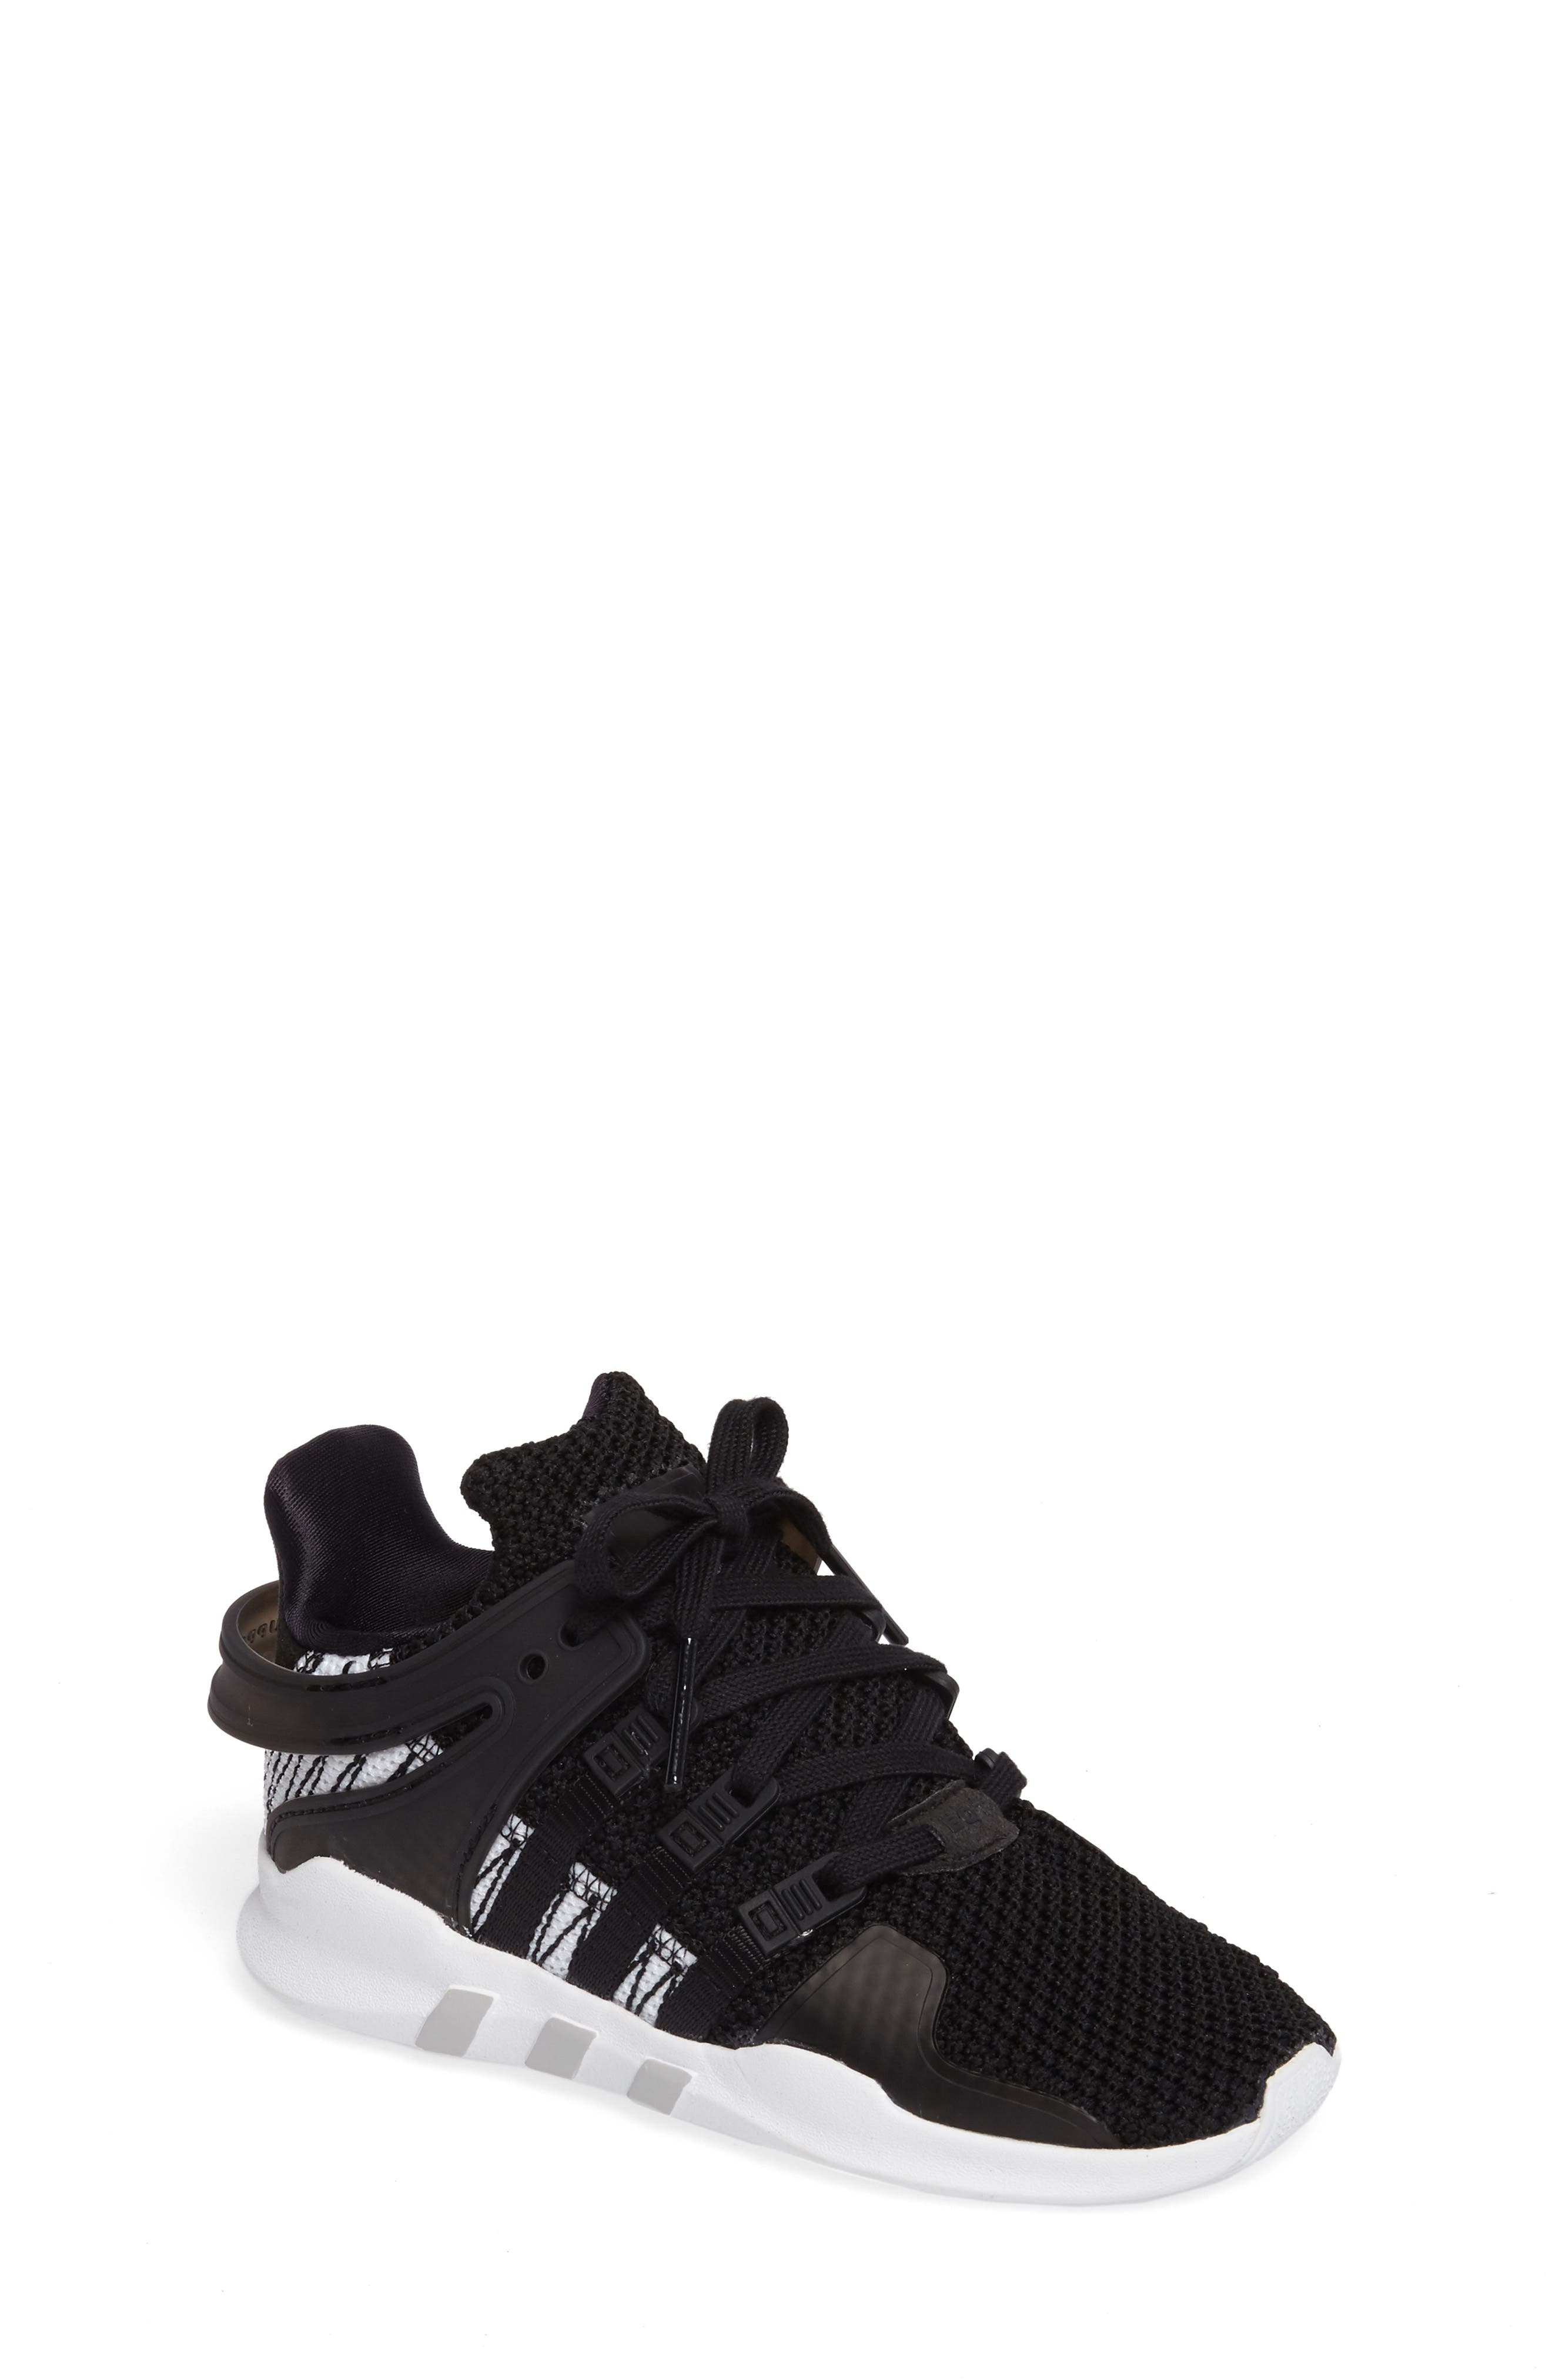 Main Image - adidas EQT Support ADV I Sneaker (Baby, Walker & Toddler)